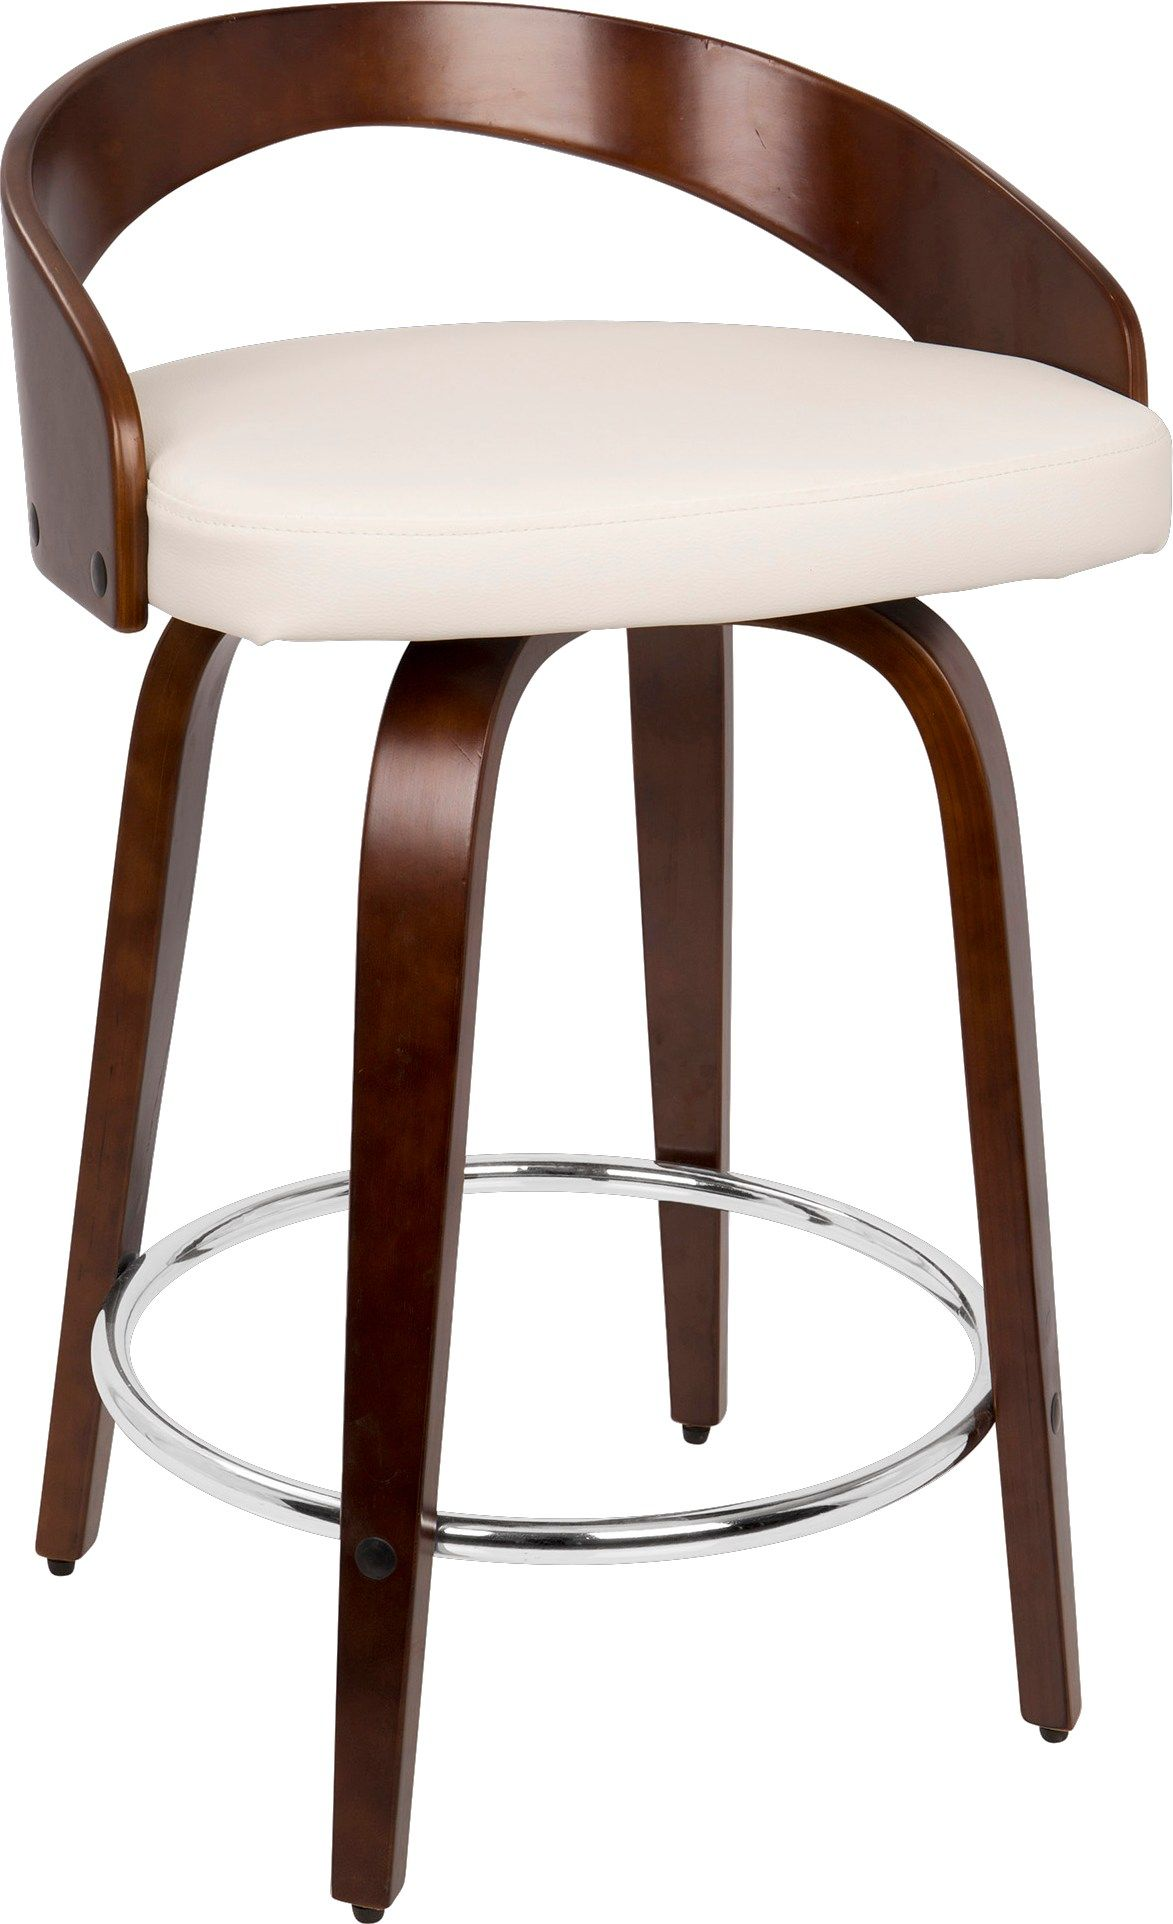 Grotto Cherry Counter Height Stool In 2019 Modern